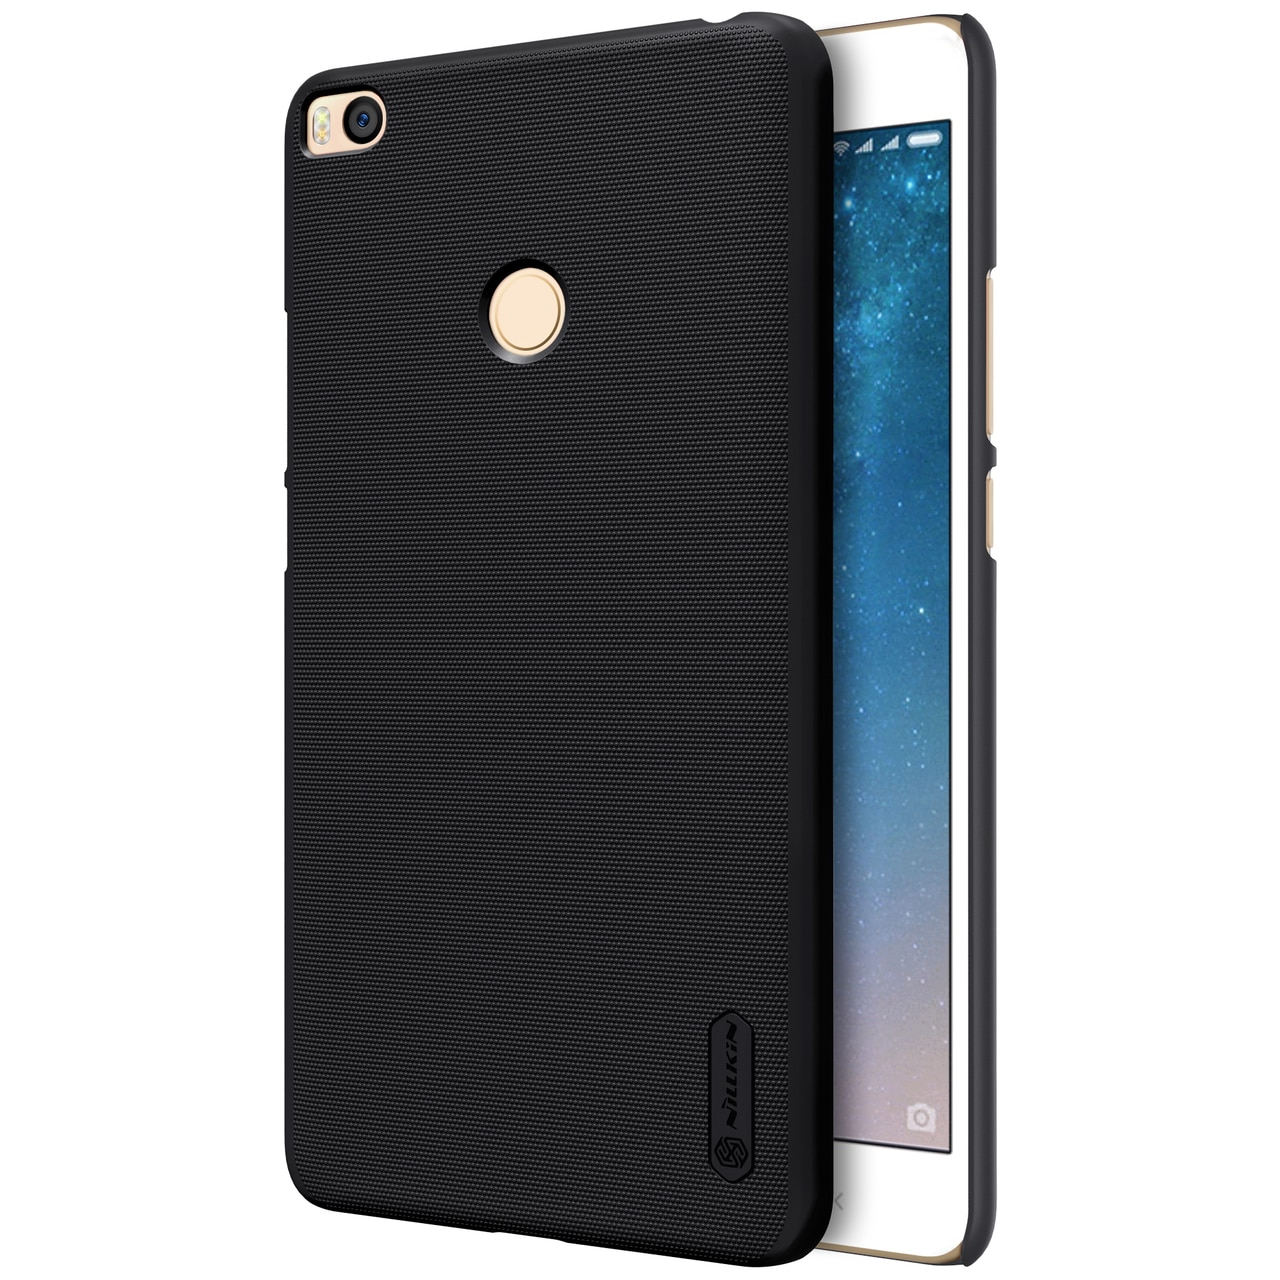 Nillkin Original Frosted Shield Back Cover for Mi Max 2 with FREE Screen Protector